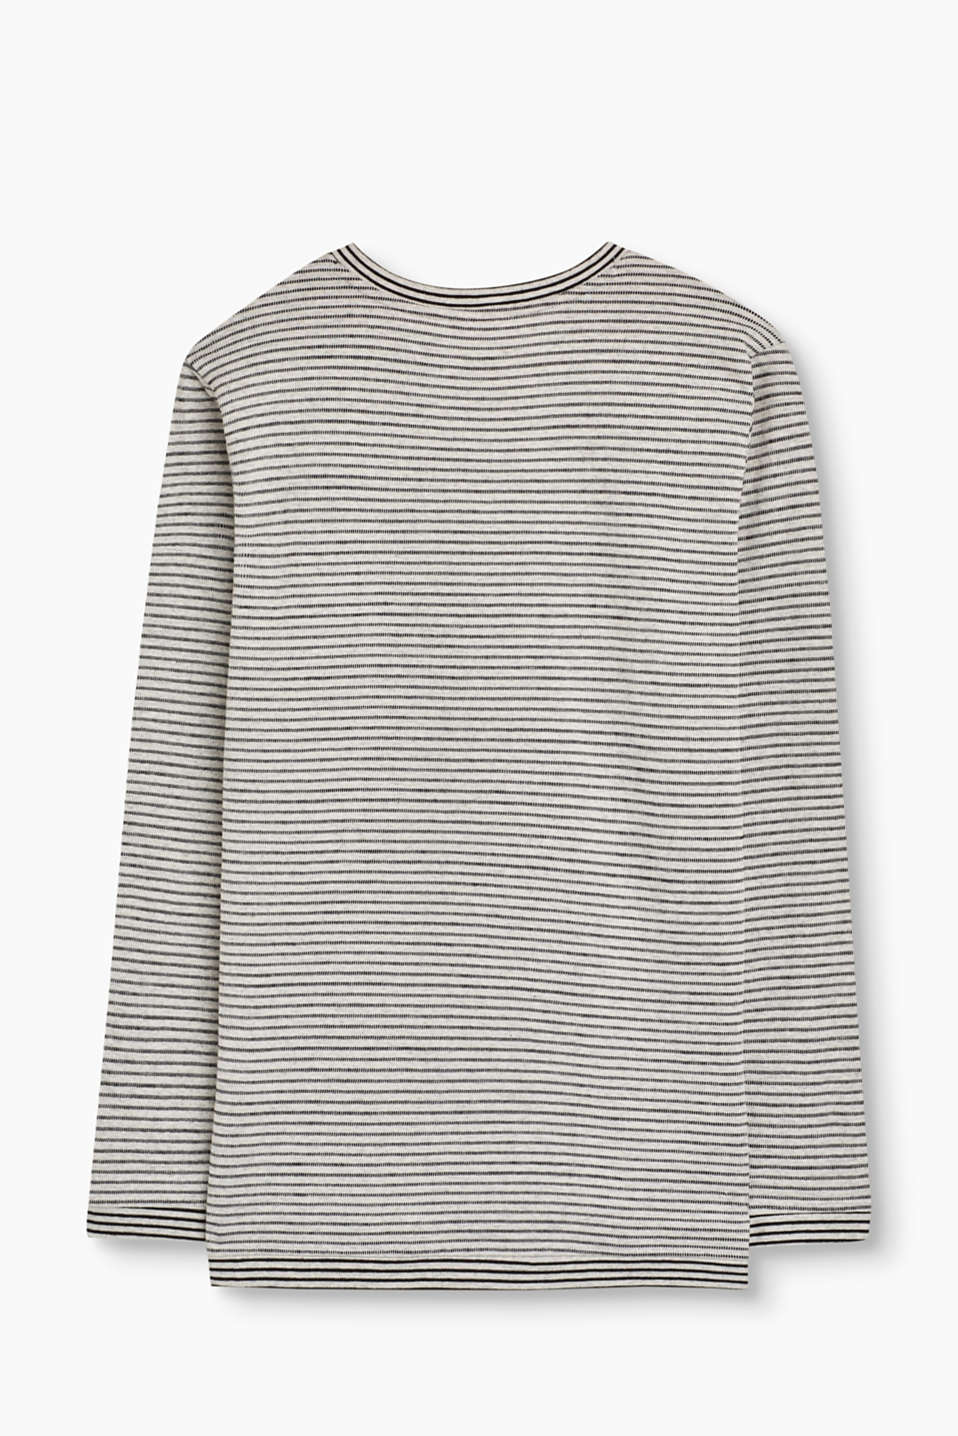 Striped long sleeve top + breast pocket